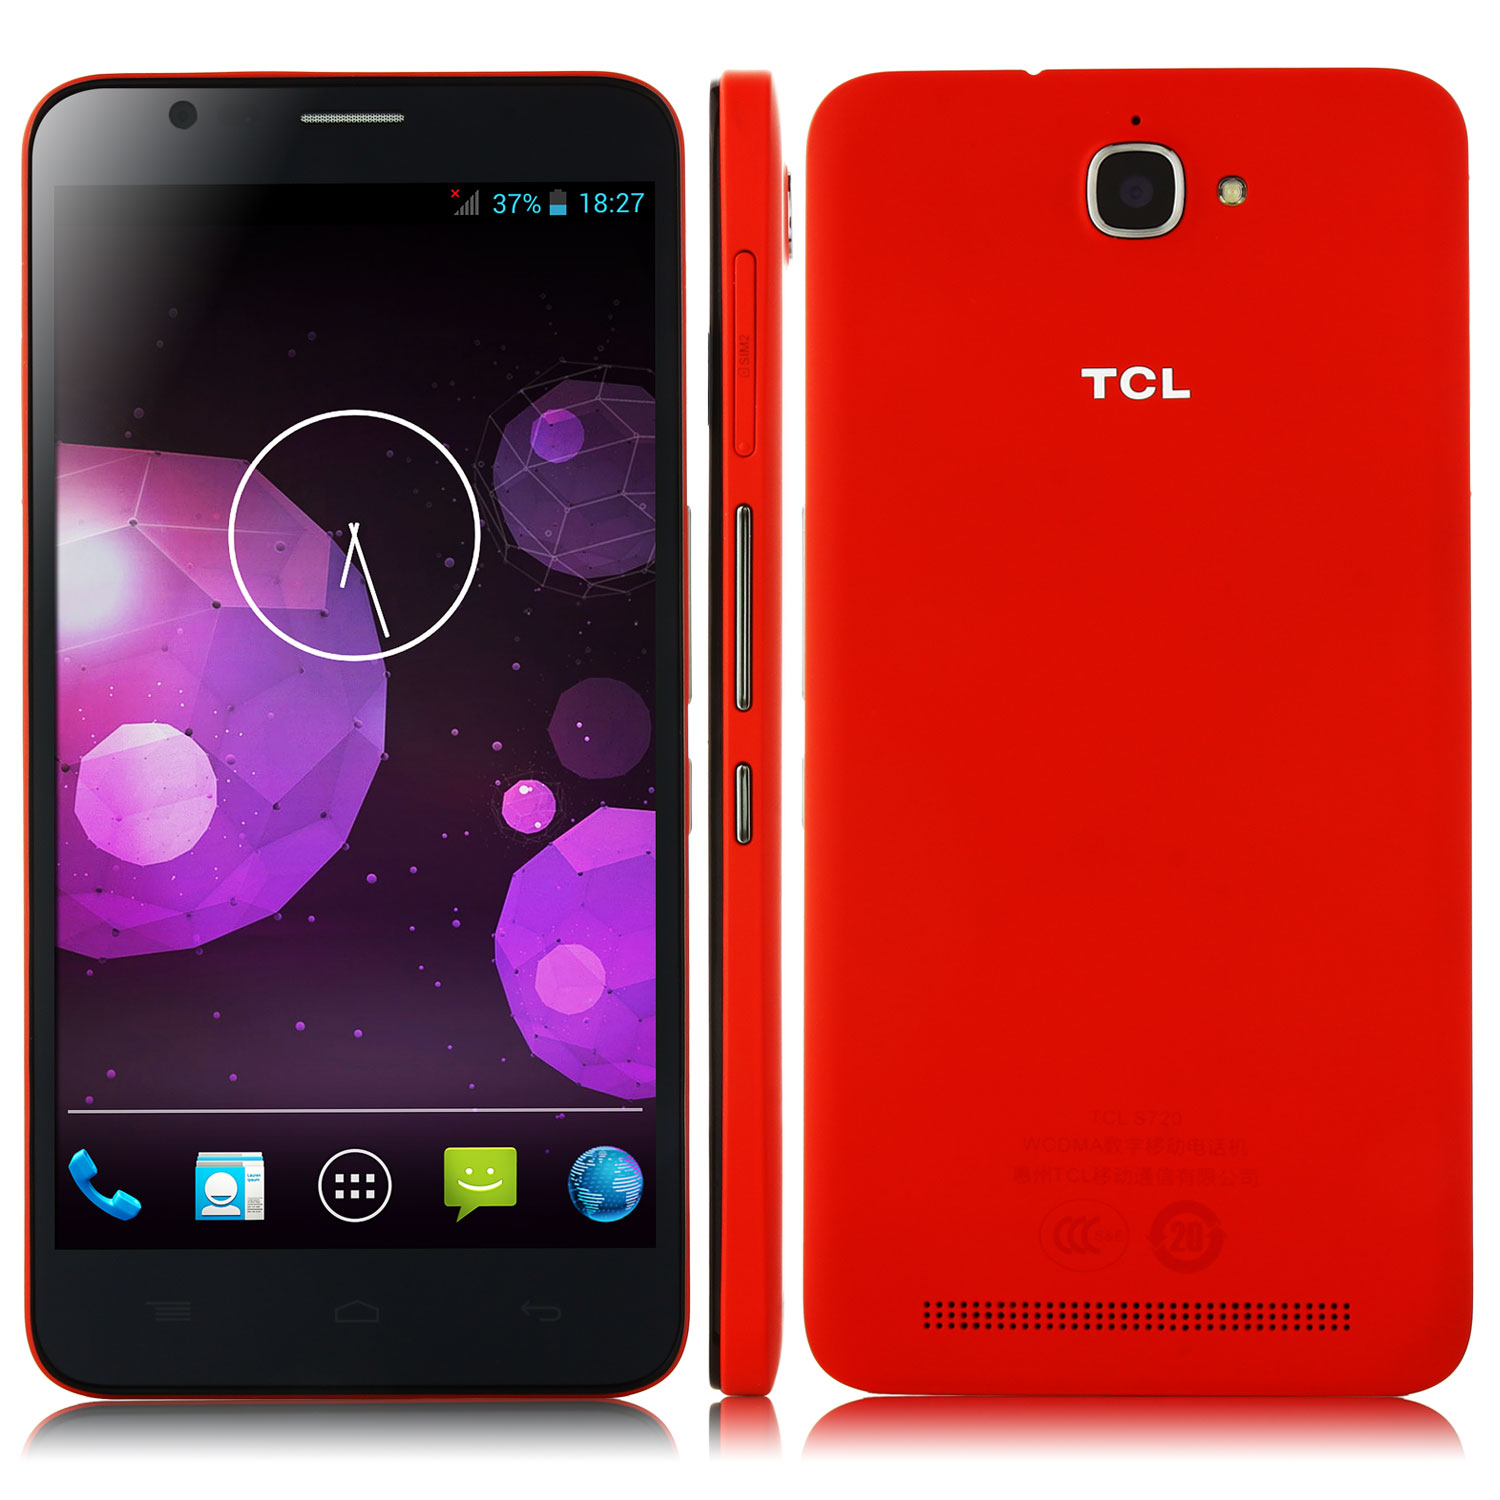 TCL S720 Smartphone MTK6592M Octa Core 1GB 8GB 5.5 Inch HD Screen 3300mAh Red